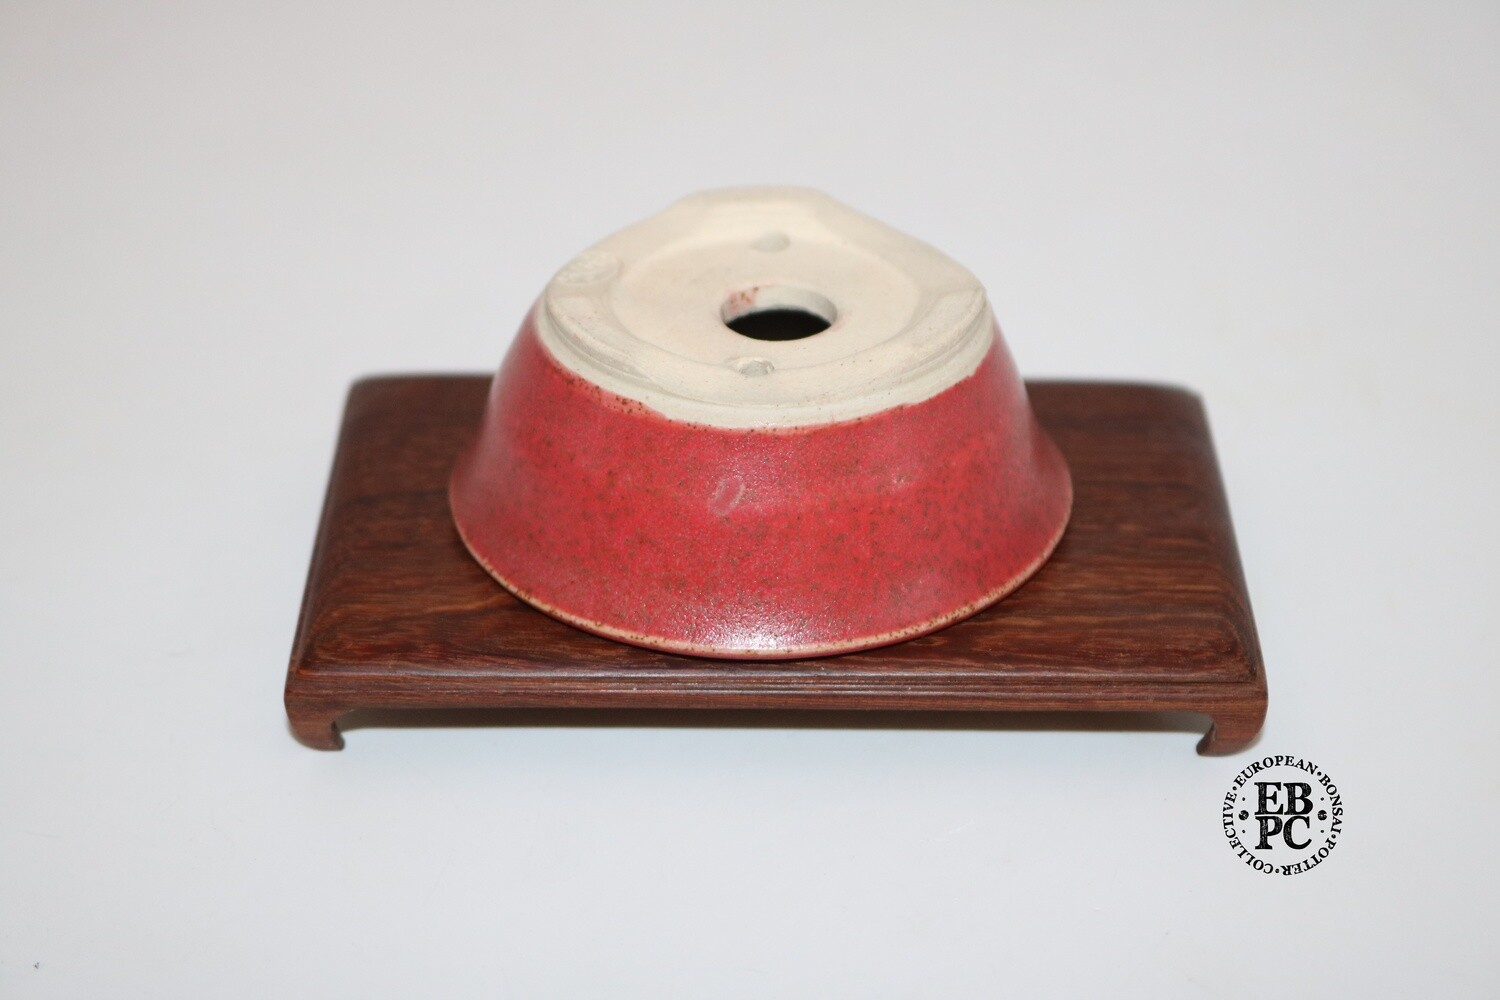 PAS Pots - 7.2cm  'Sublime Reds'; Round; Mame / Accent pot; Hand Thrown; Superb Glaze; Detailed foot ring; Patricia